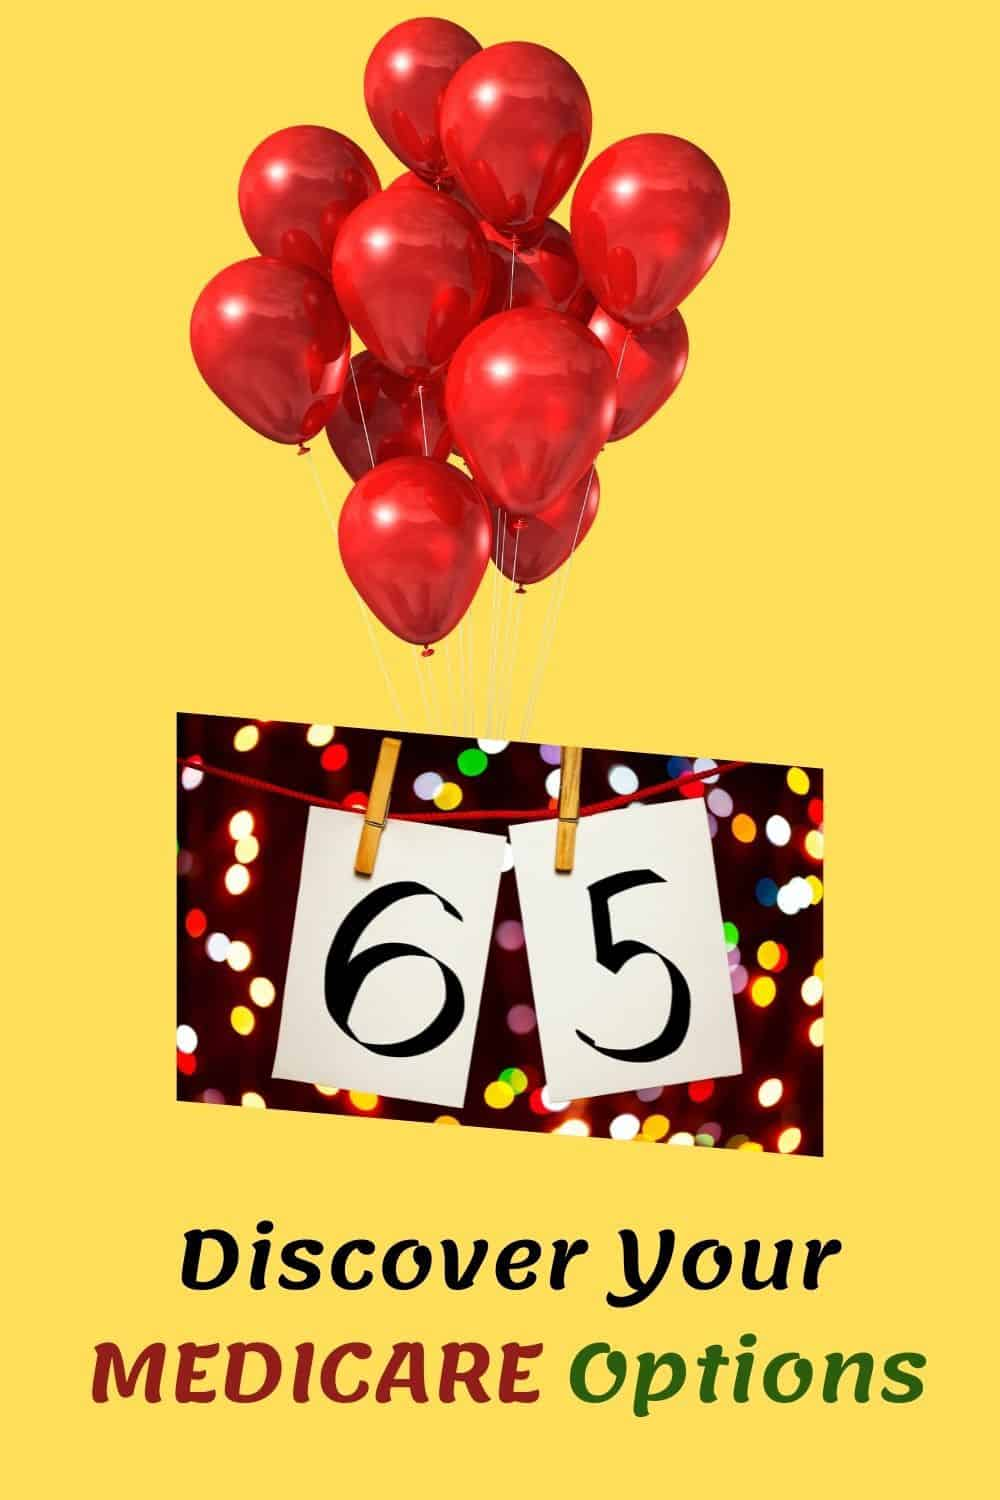 Discover Your MEDICARE Options Balloons celebrating 65 over